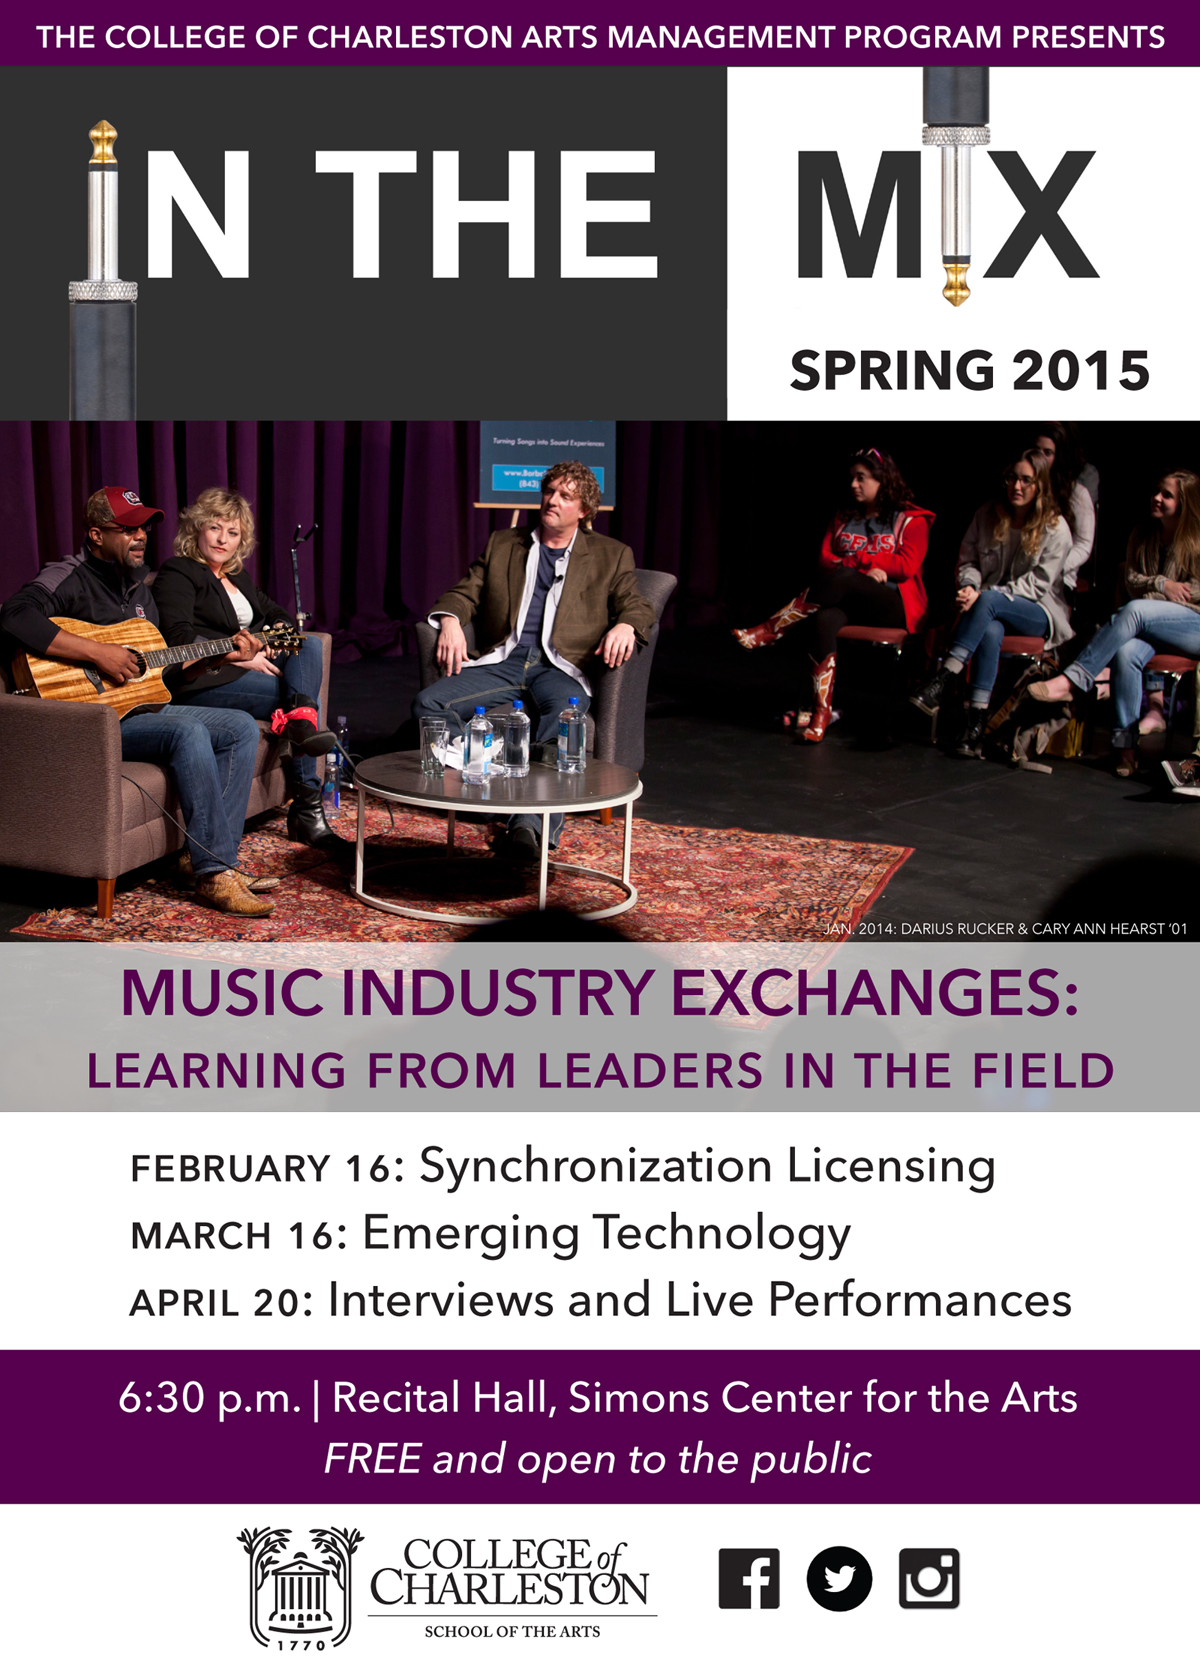 IN THE MIX Music Industry Series Continues